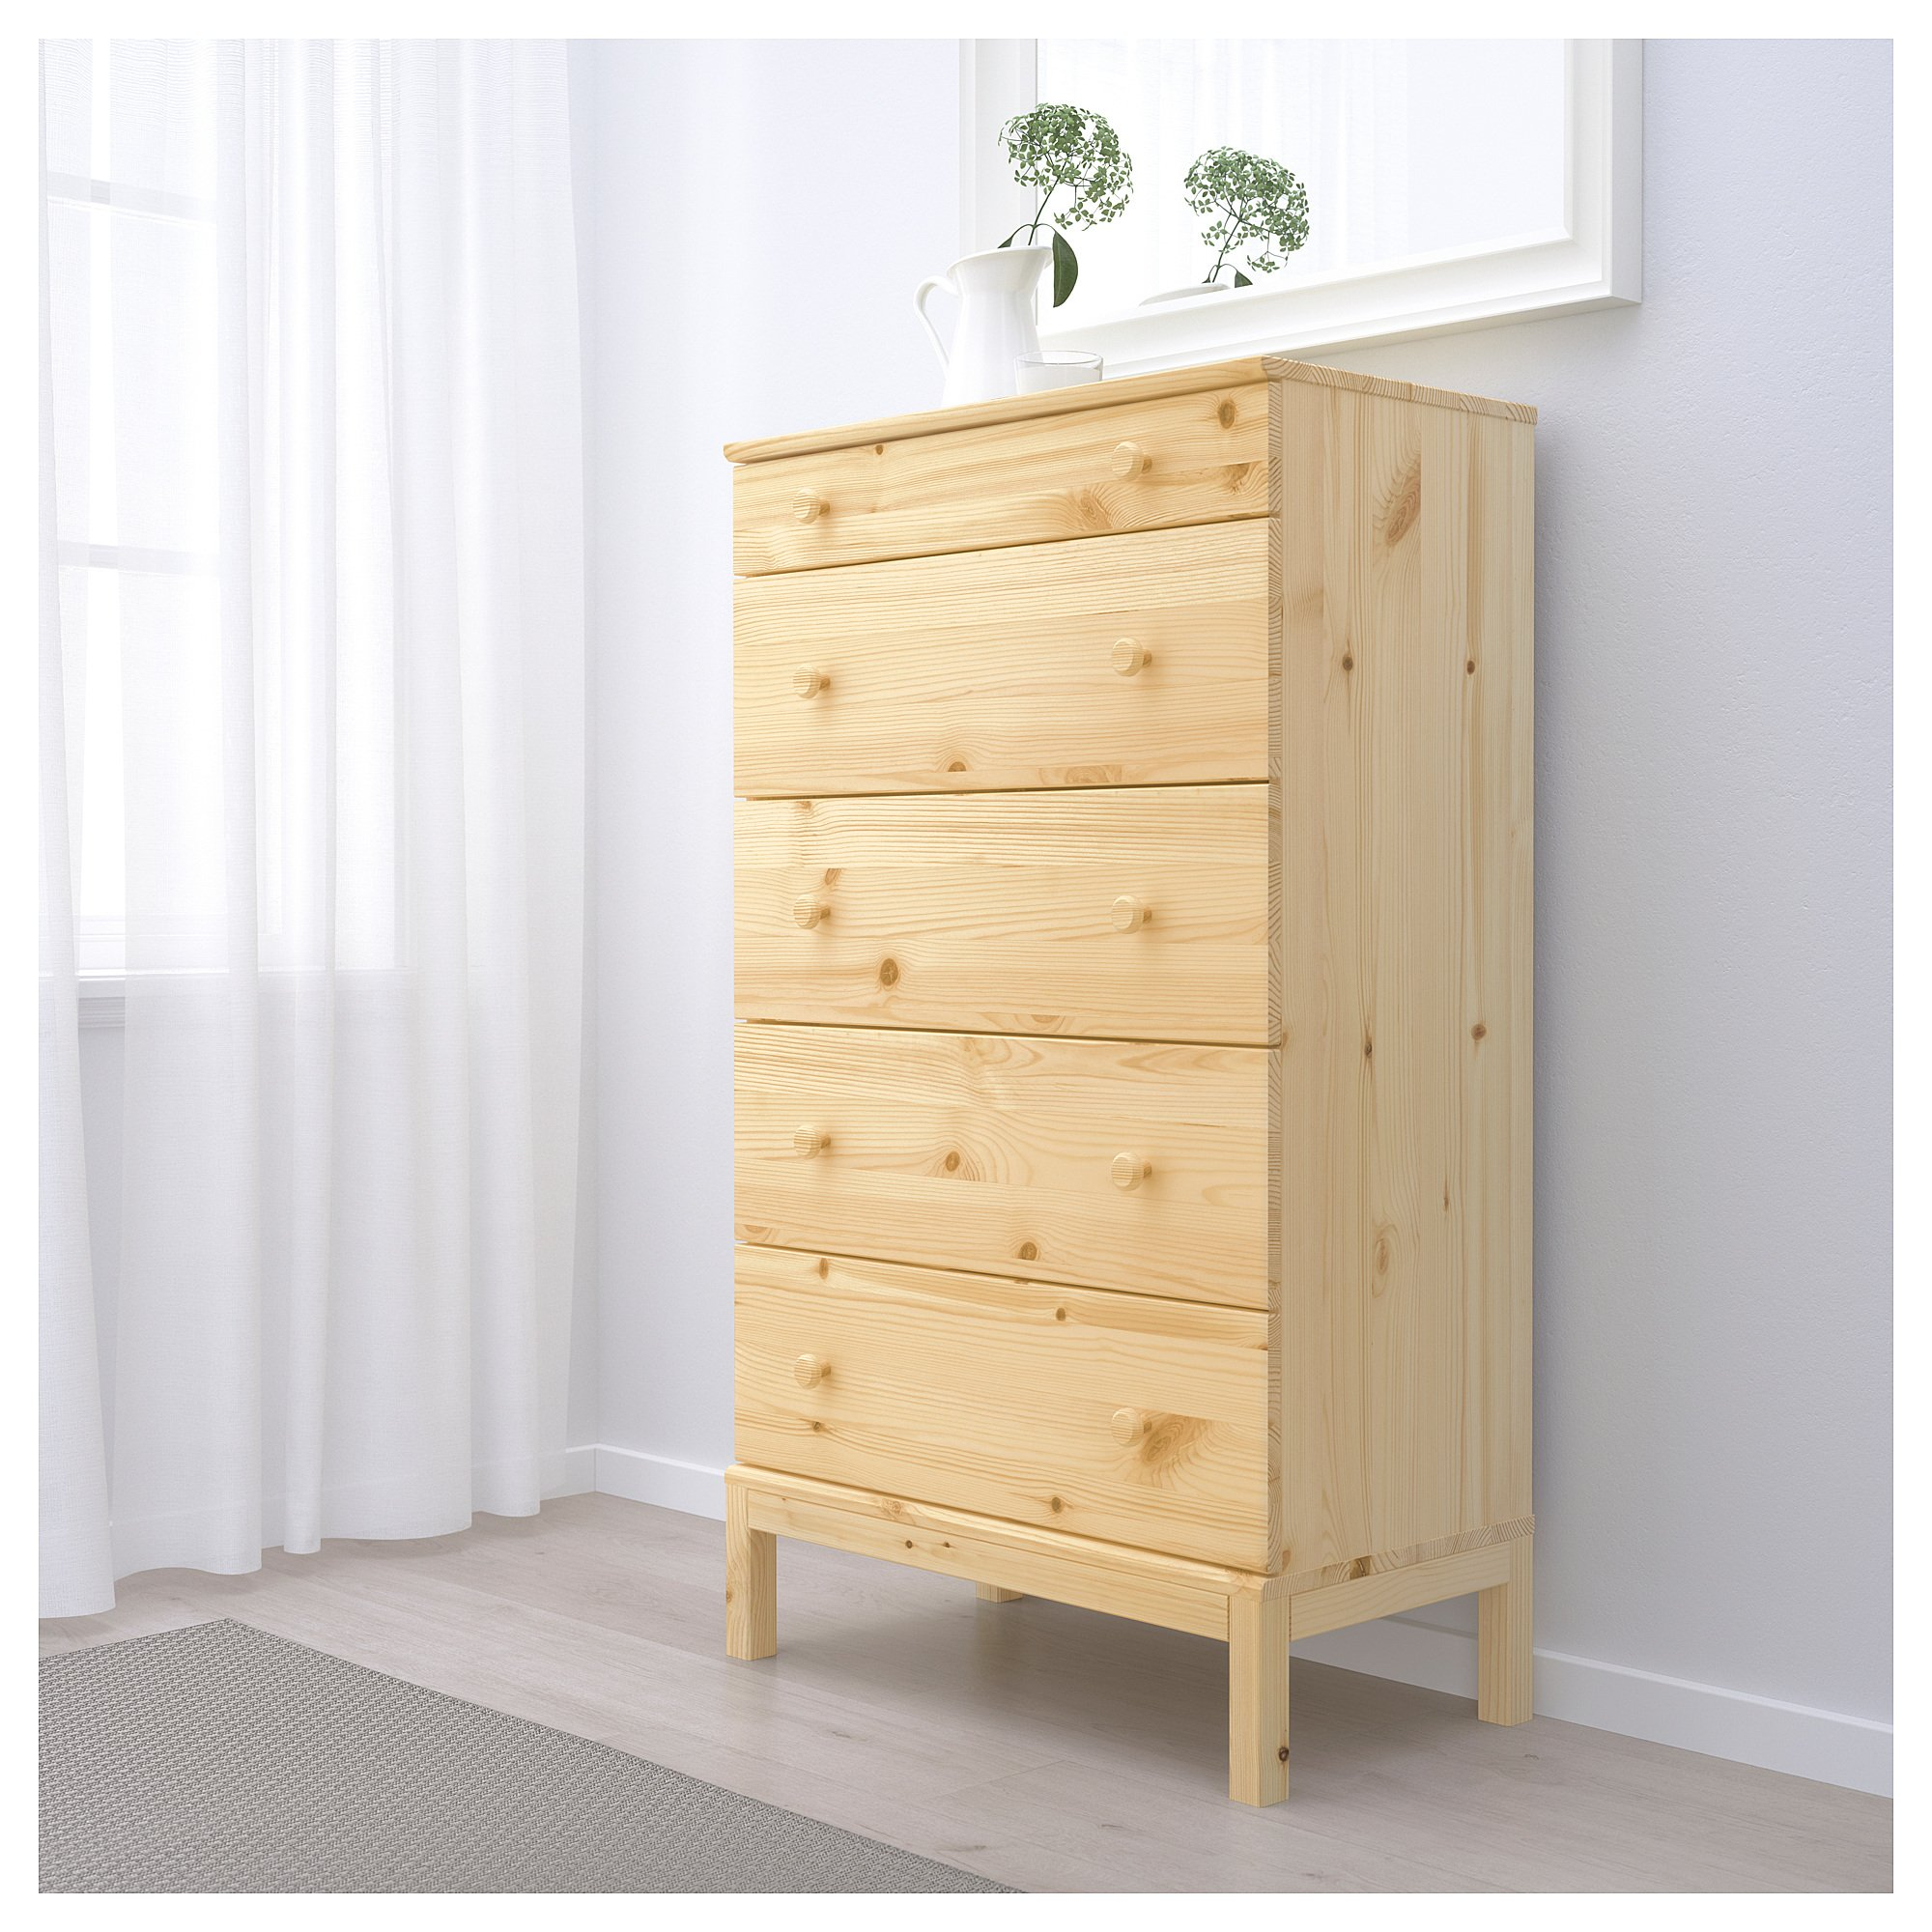 Ikea 5-drawer chest, pine by Ikeaa